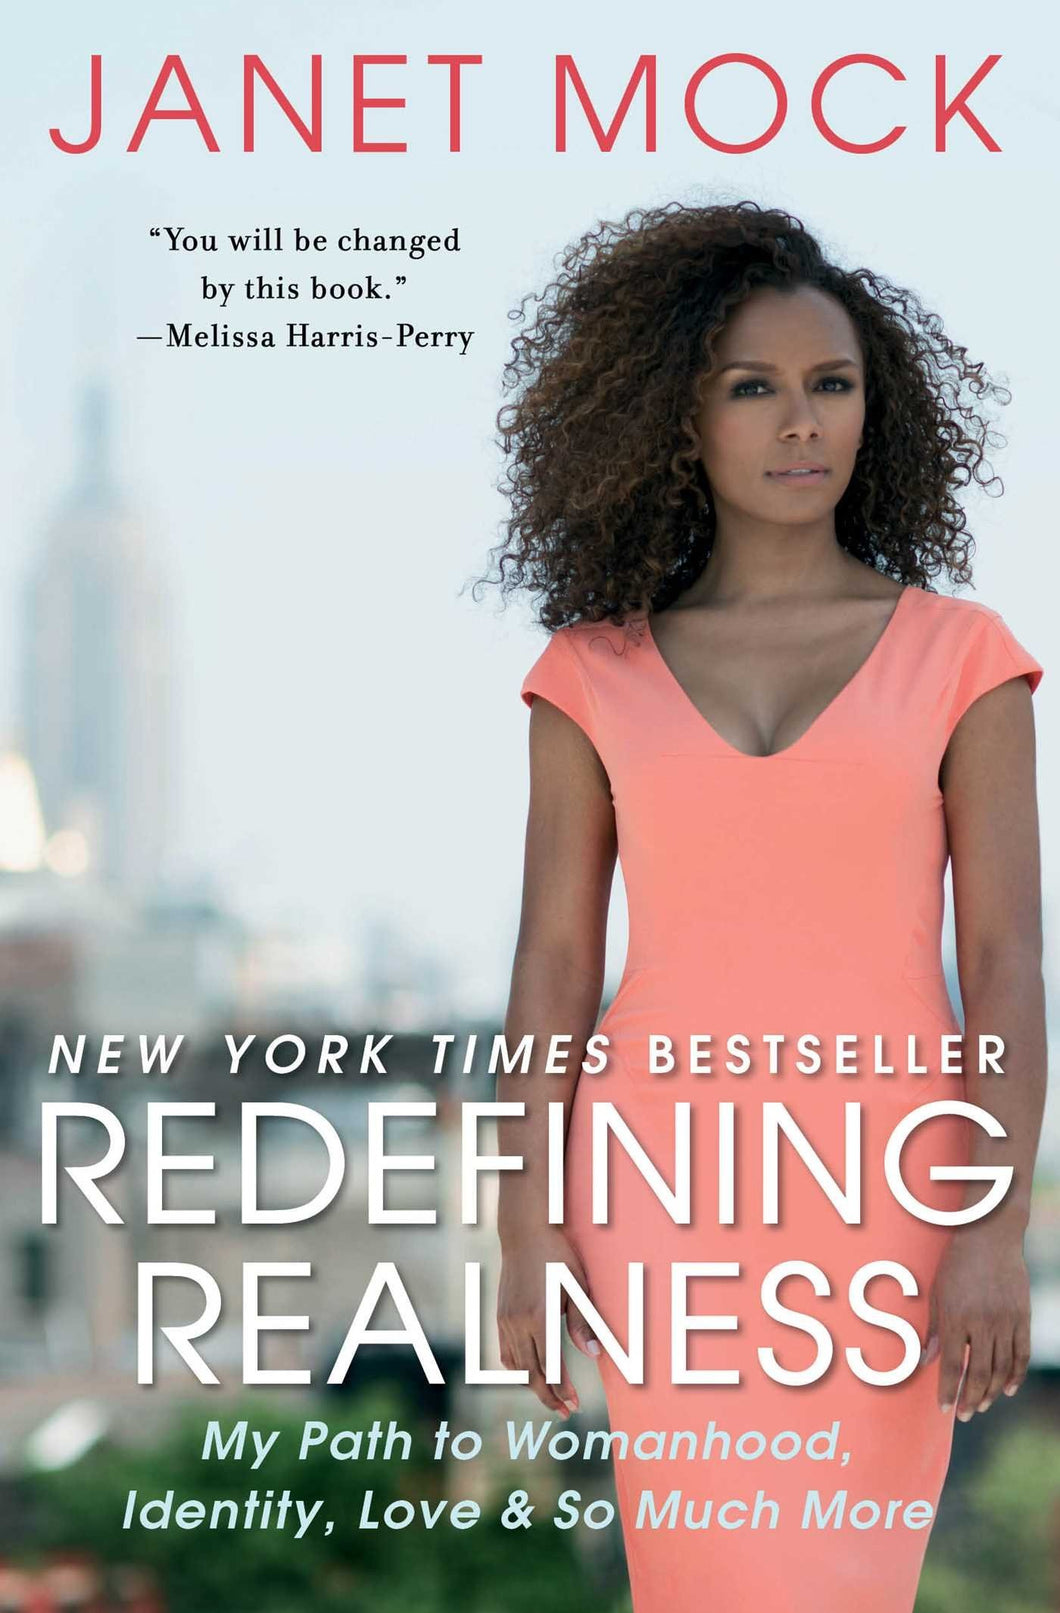 Redefining Realness: My Path to Womanhood, Identity, Love & So Much More by Janet Mock